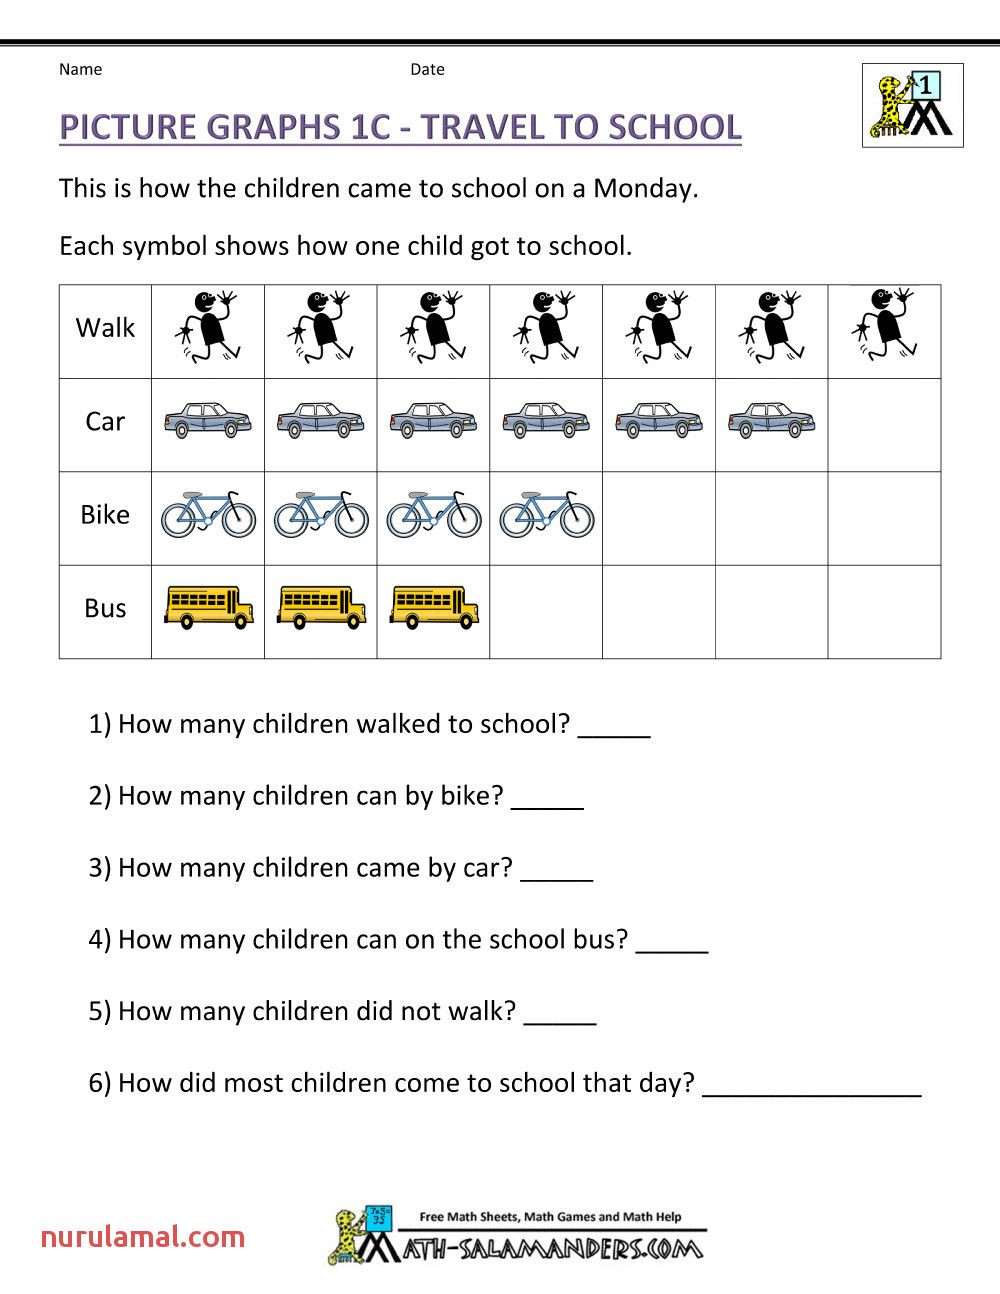 Pictograph Worksheets 2nd Grade Pin On Math Worksheets